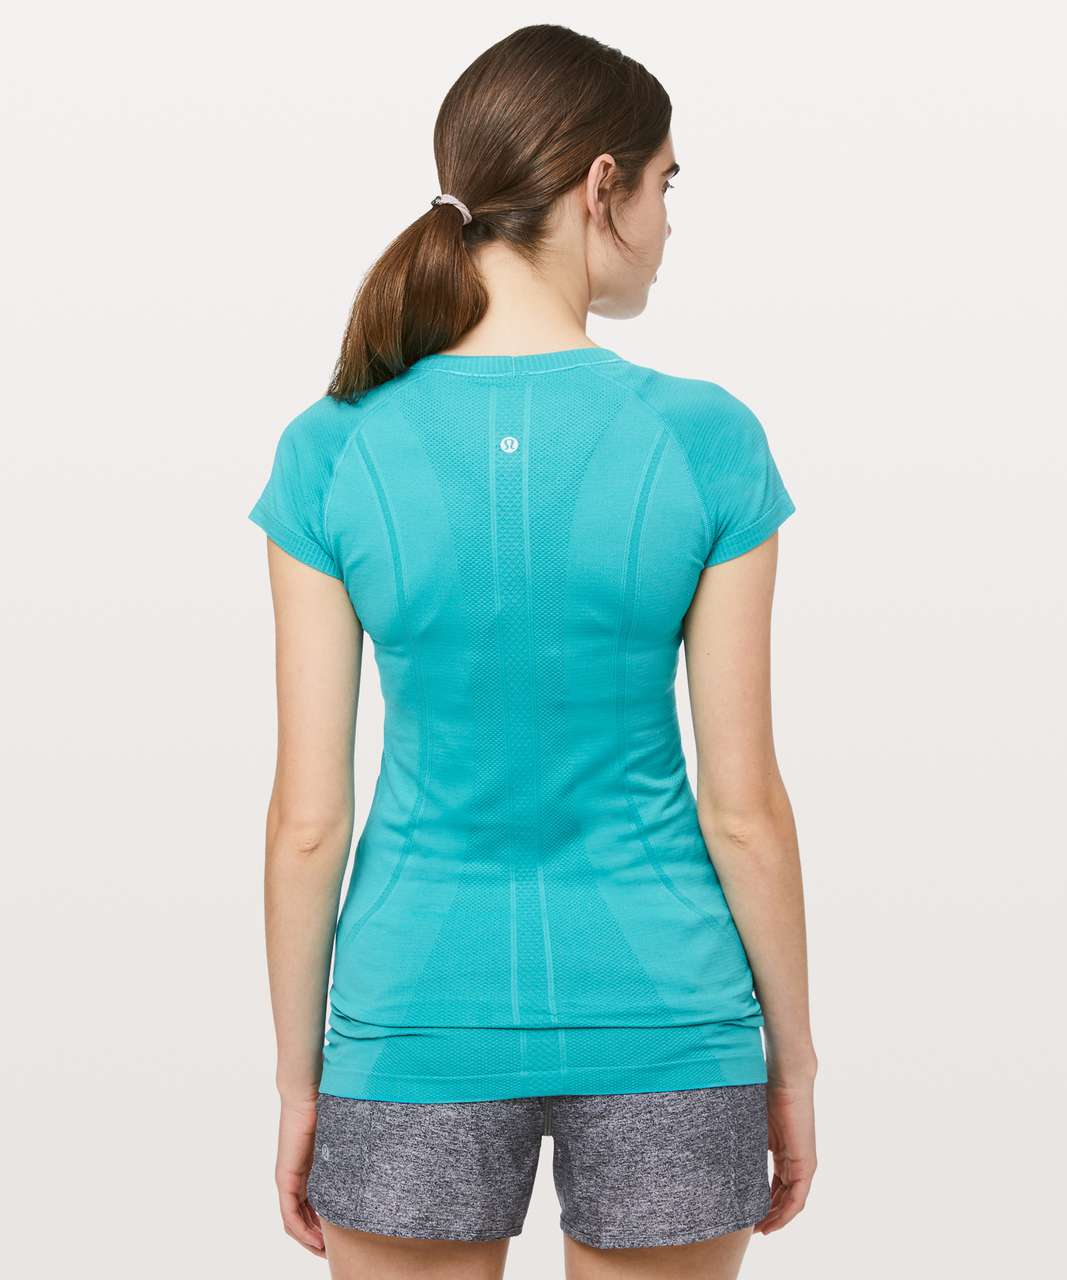 Lululemon Swiftly Tech Short Sleeve Crew - Amazonite / Amazonite